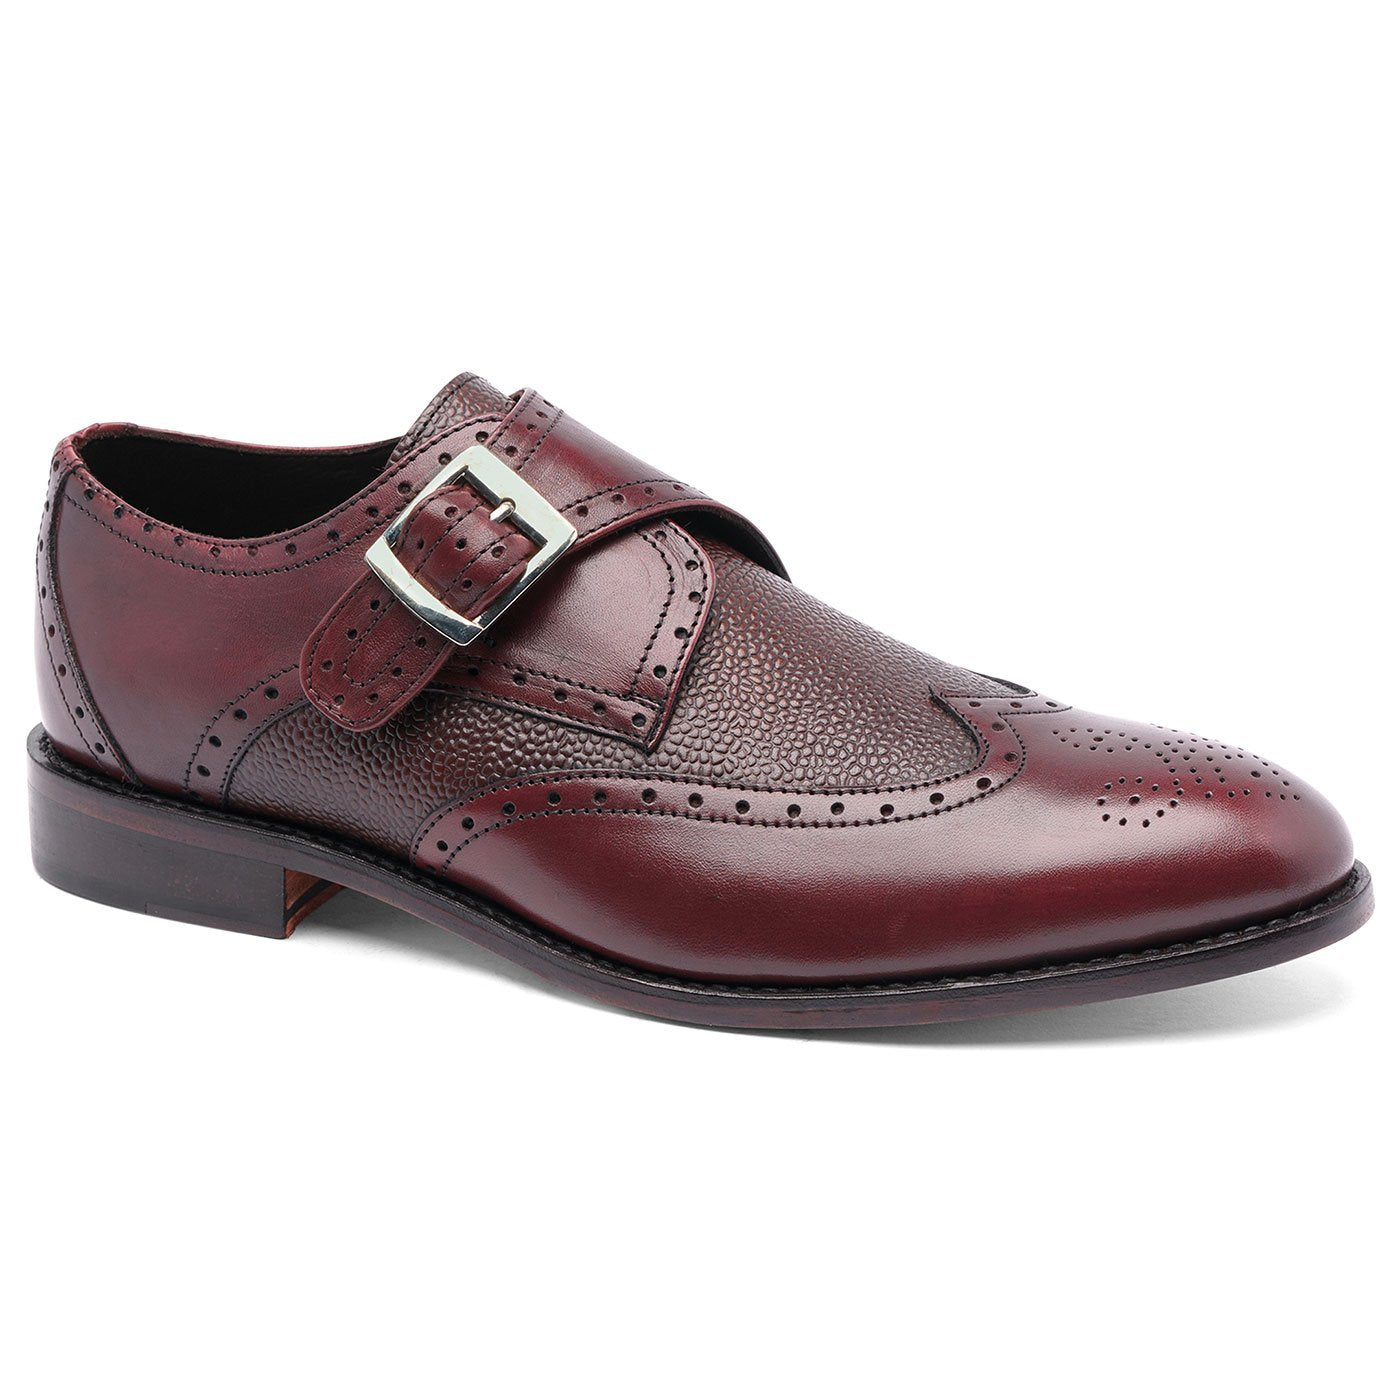 Roosevelt III Wingtip Single Monk Strap